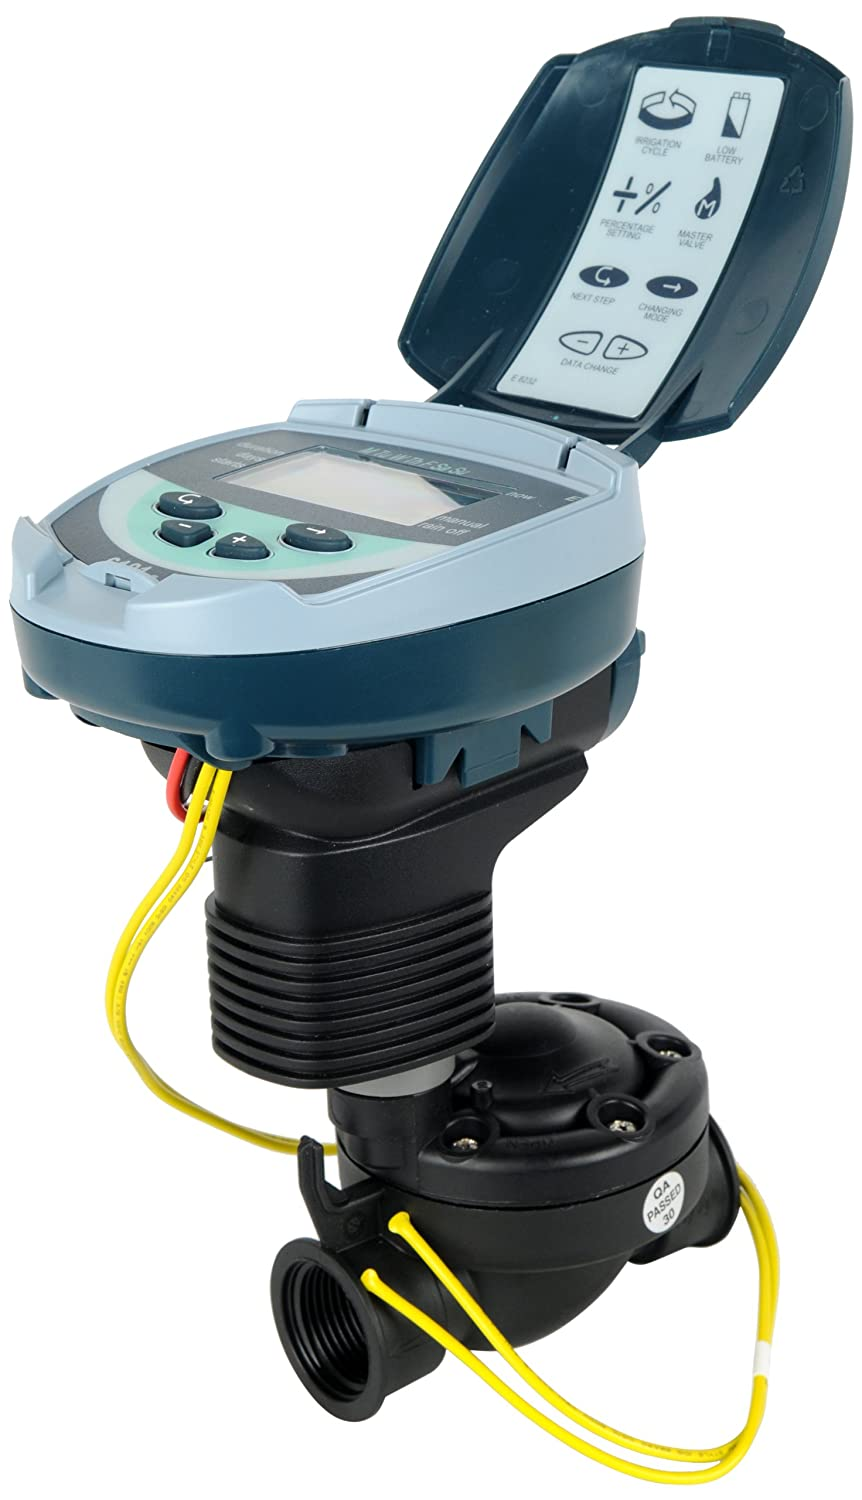 Galcon 61012 DC-1 1-Station Battery Operated Controller with 1-Inch Valve Galcon USA LTD GAJ1SH322P0